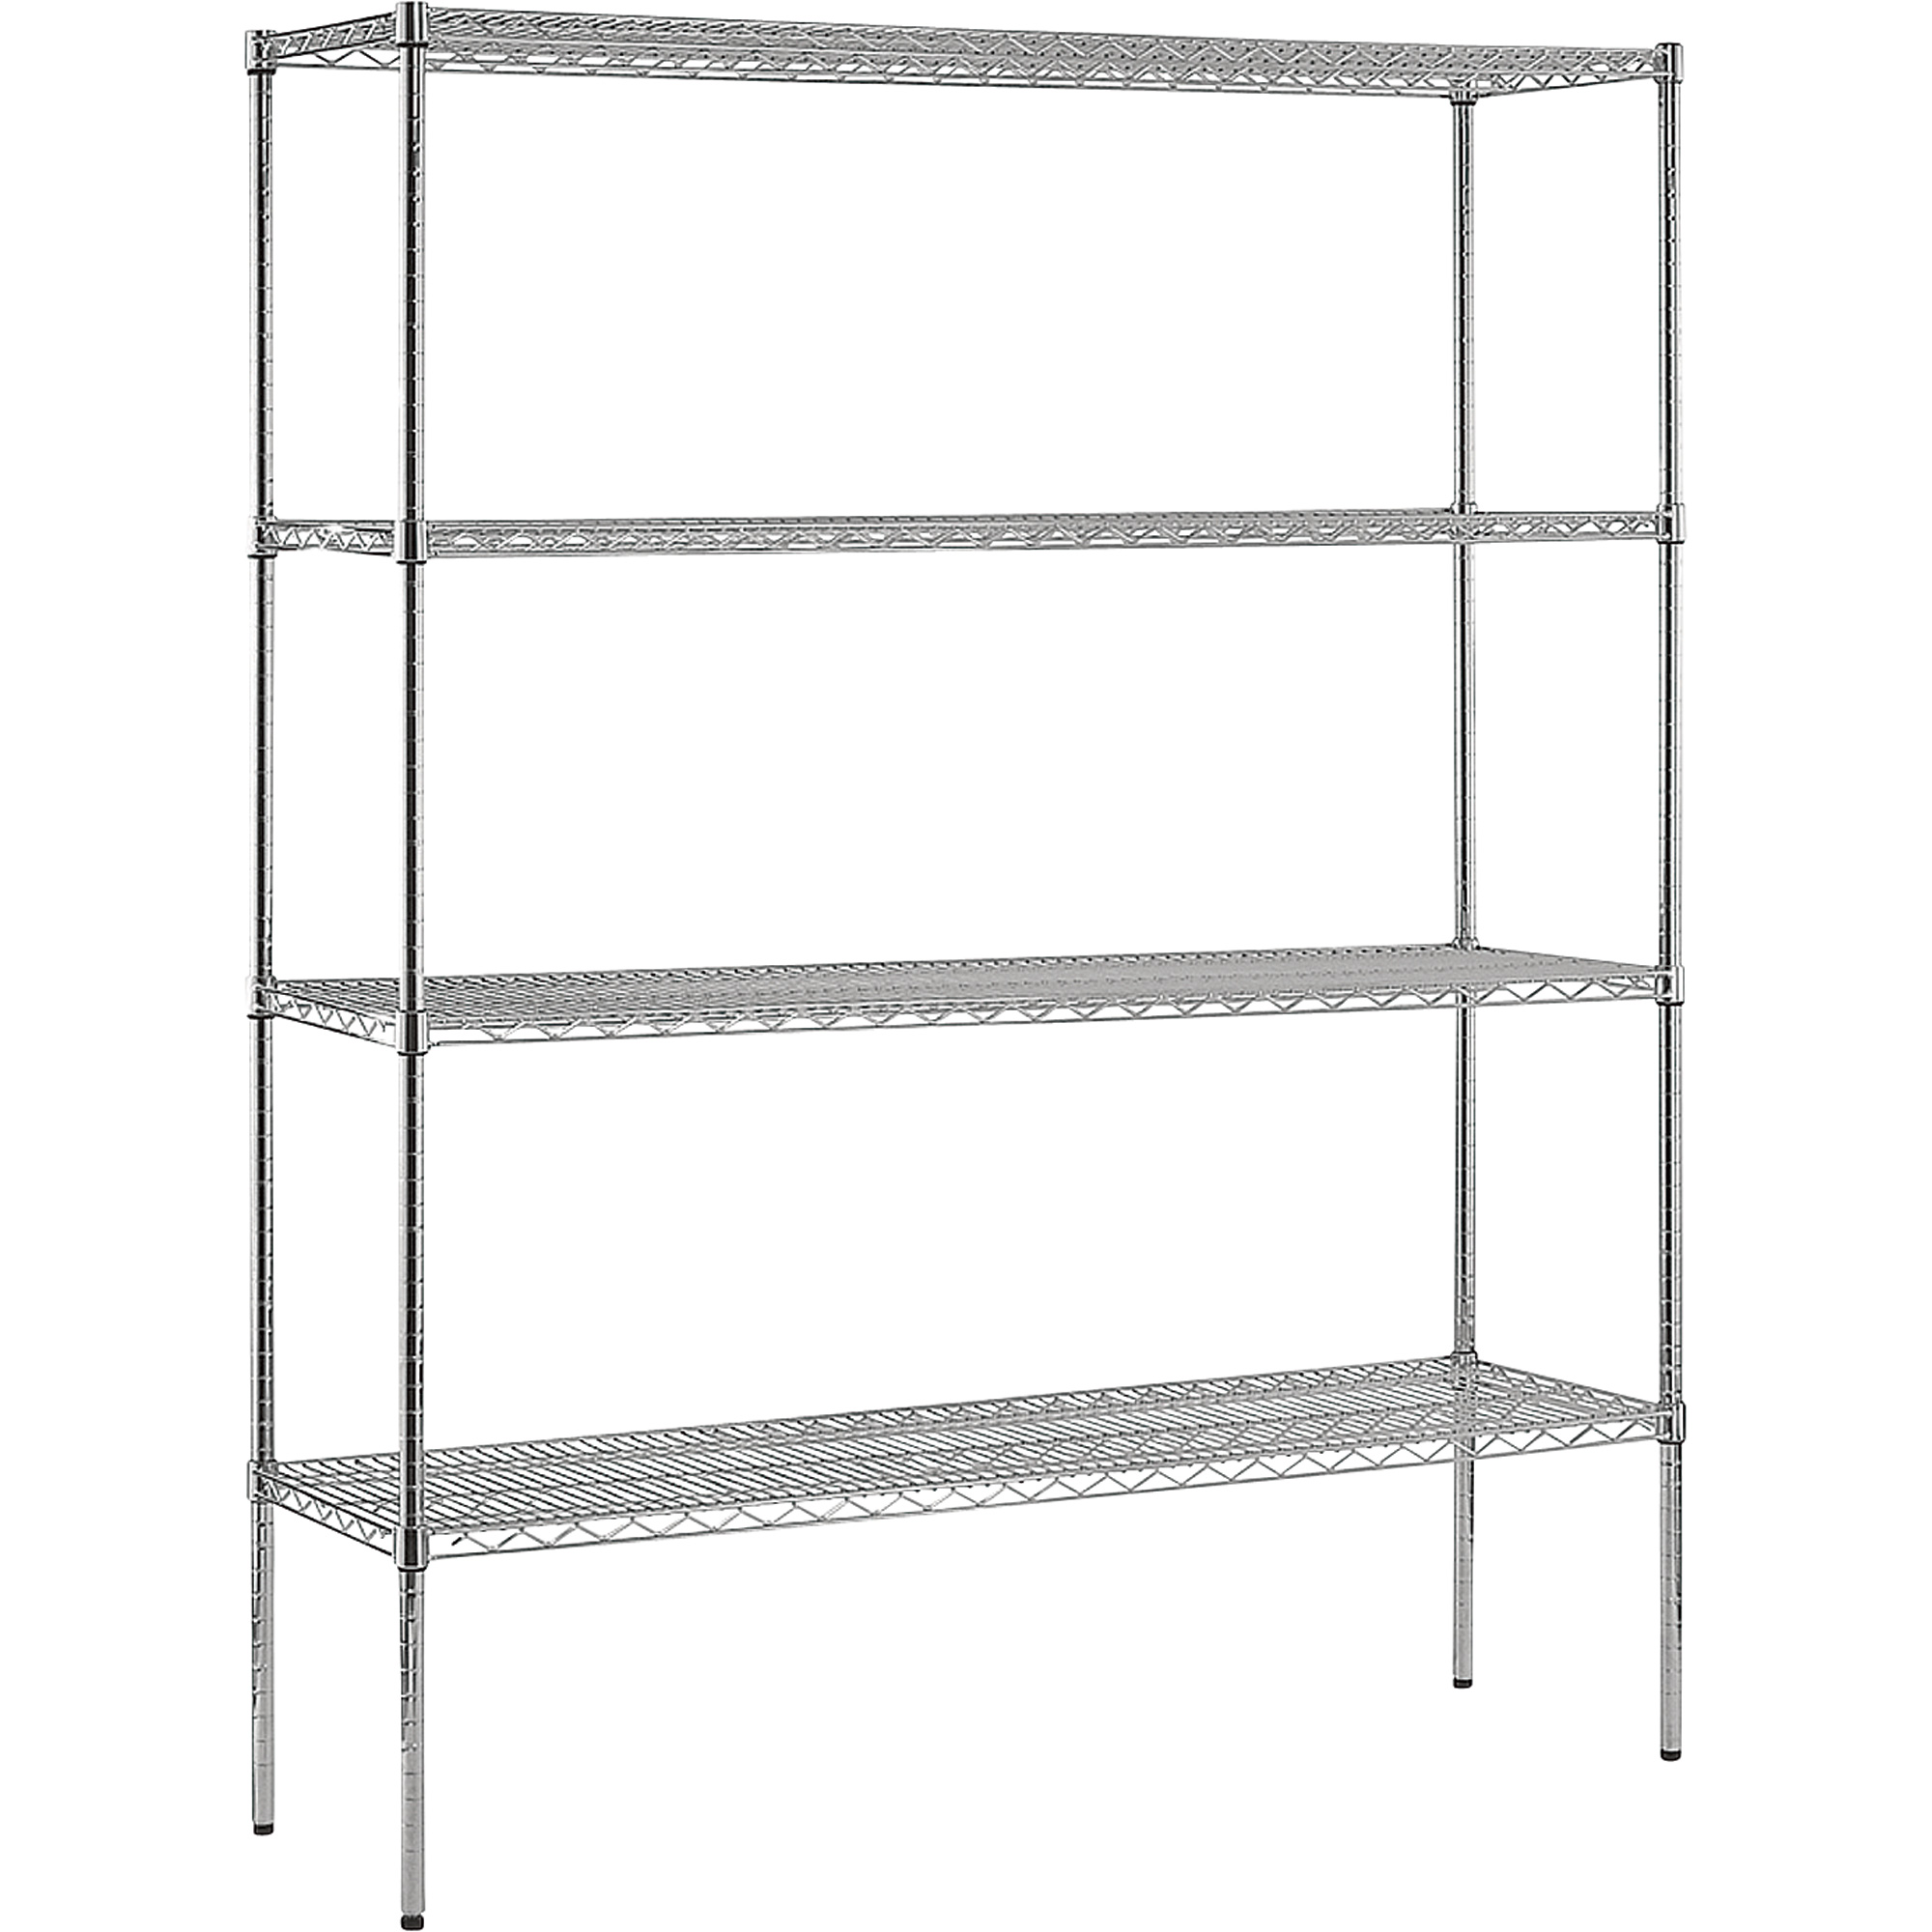 Use Edsal Shelving At Your Garage To Save Your Tools: Cozy 4 Shelf Chrome Wire Shelving Unit By Edsal Shelving For Garage Furniture Ideas